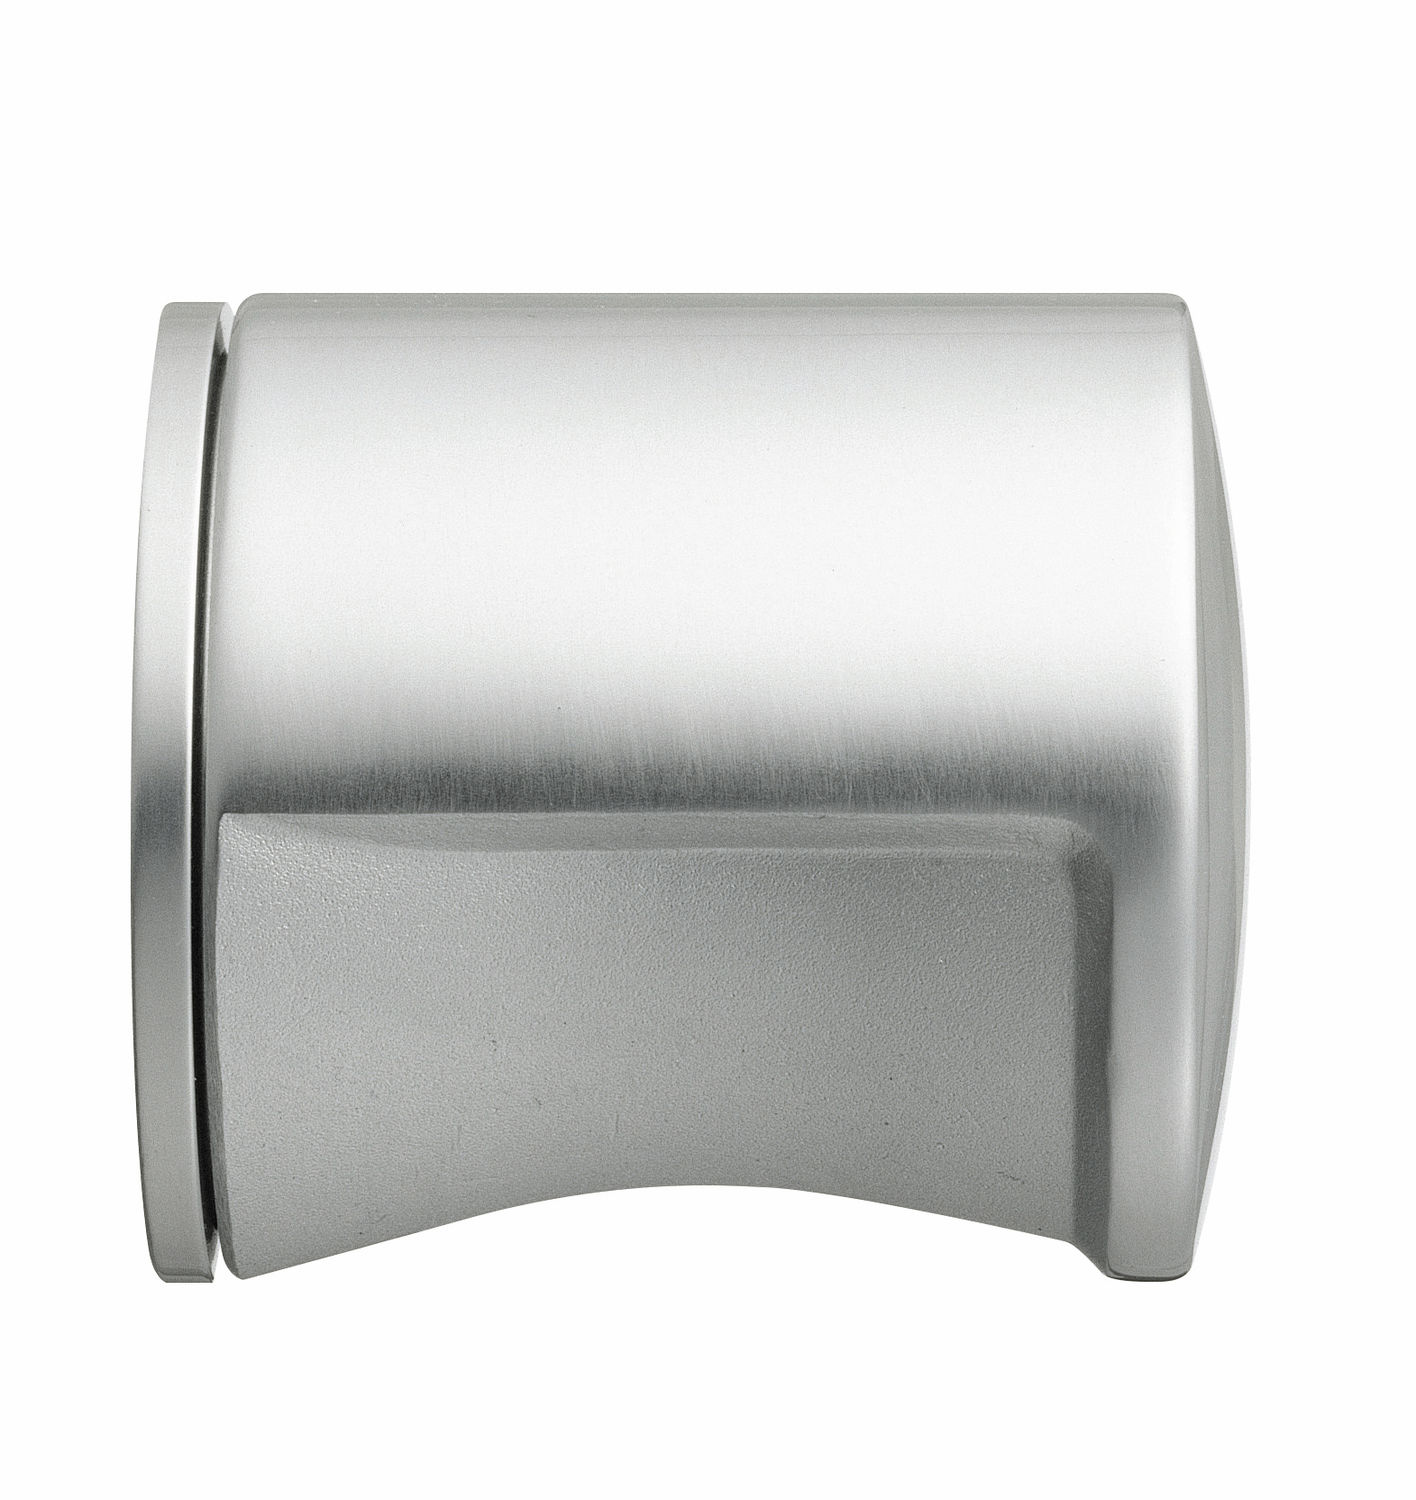 Contemporary door knob aluminum AGAHO 154 WEST inx